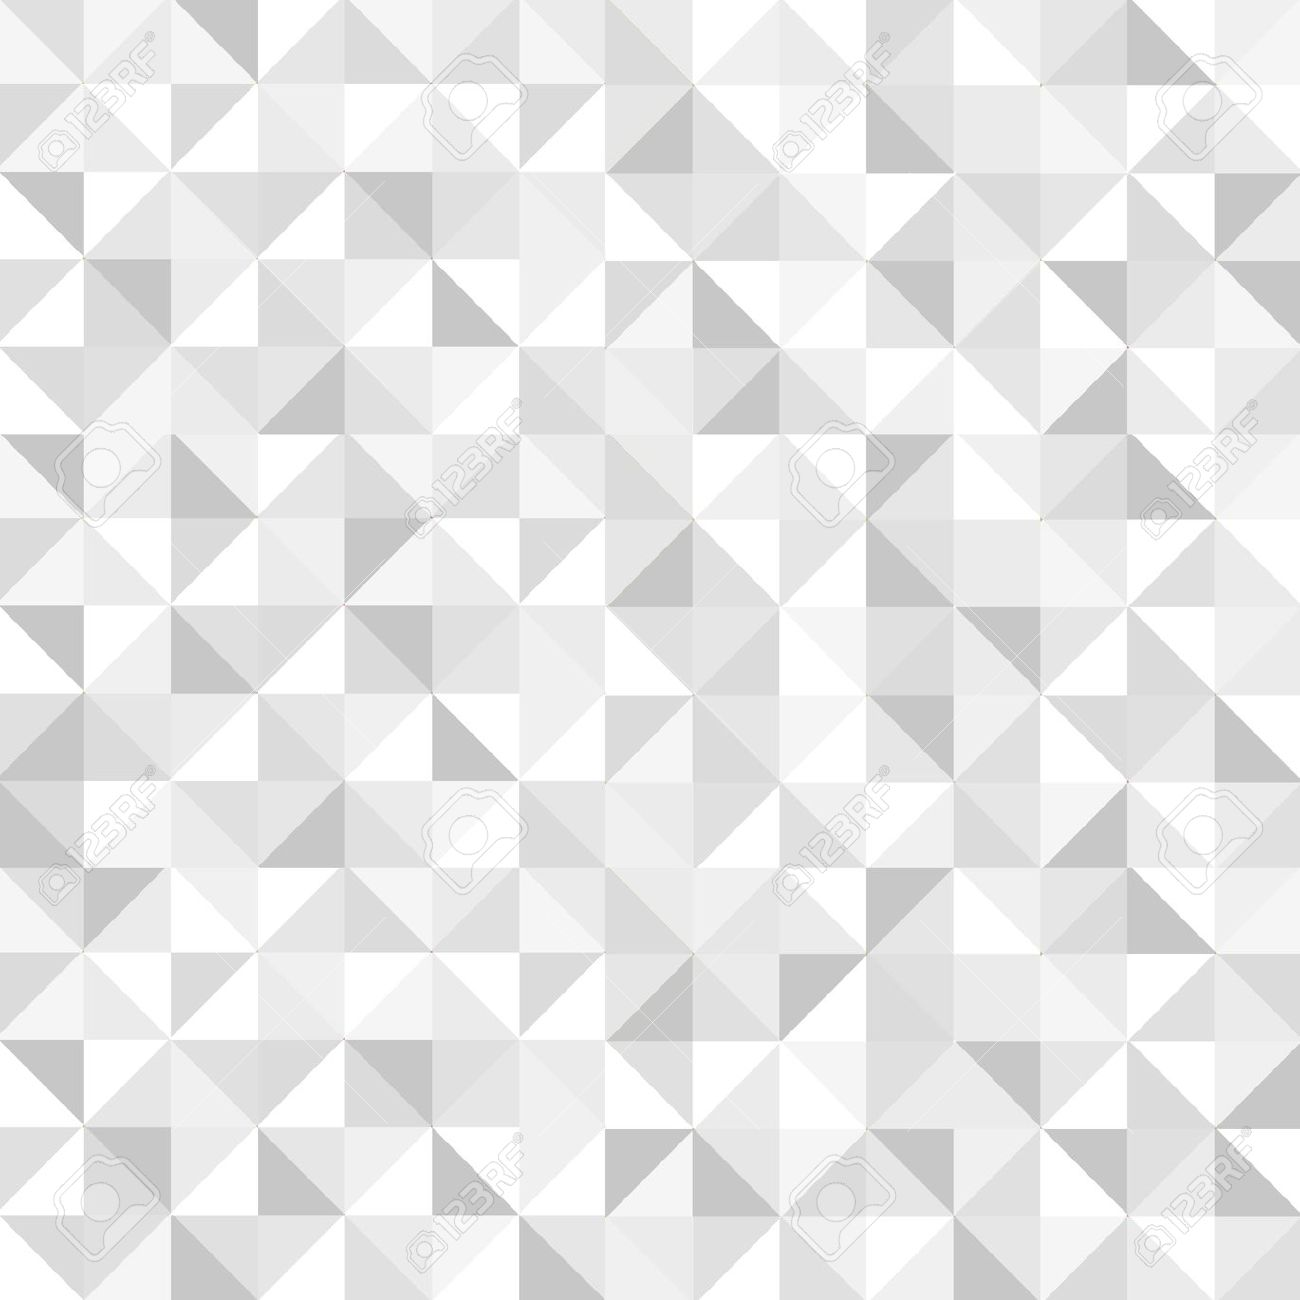 FunMozar Geometric Triangle Wallpapers 1300x1300